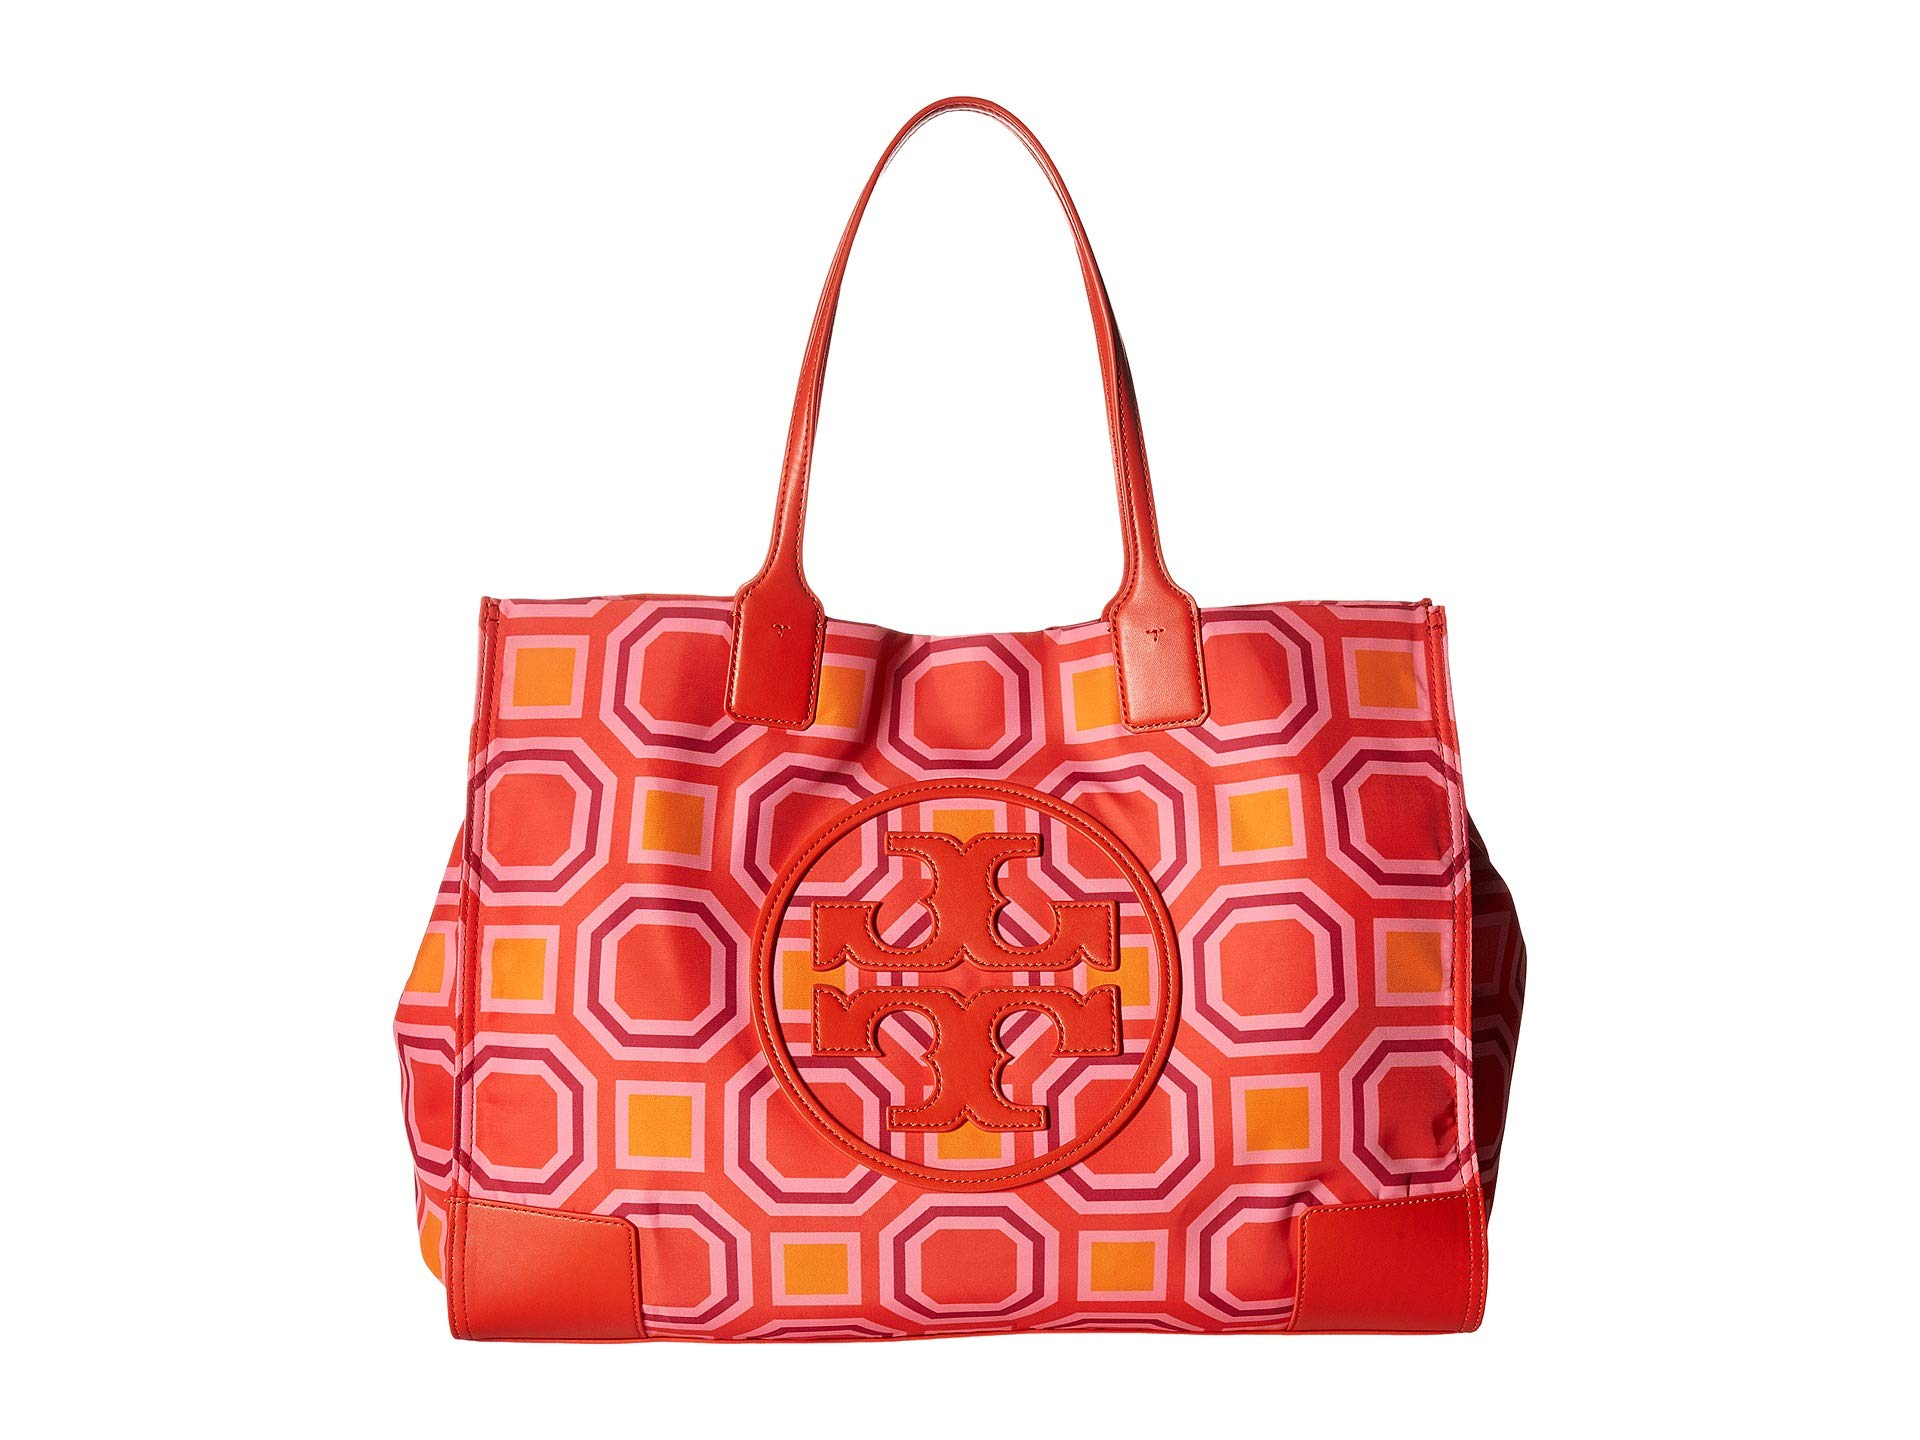 751abc77e17 This Tory Burch Ella Printed Tote is on sale for only  120 + free shipping!  (commissioned links) P.S. Please let me know if you grab something else ...